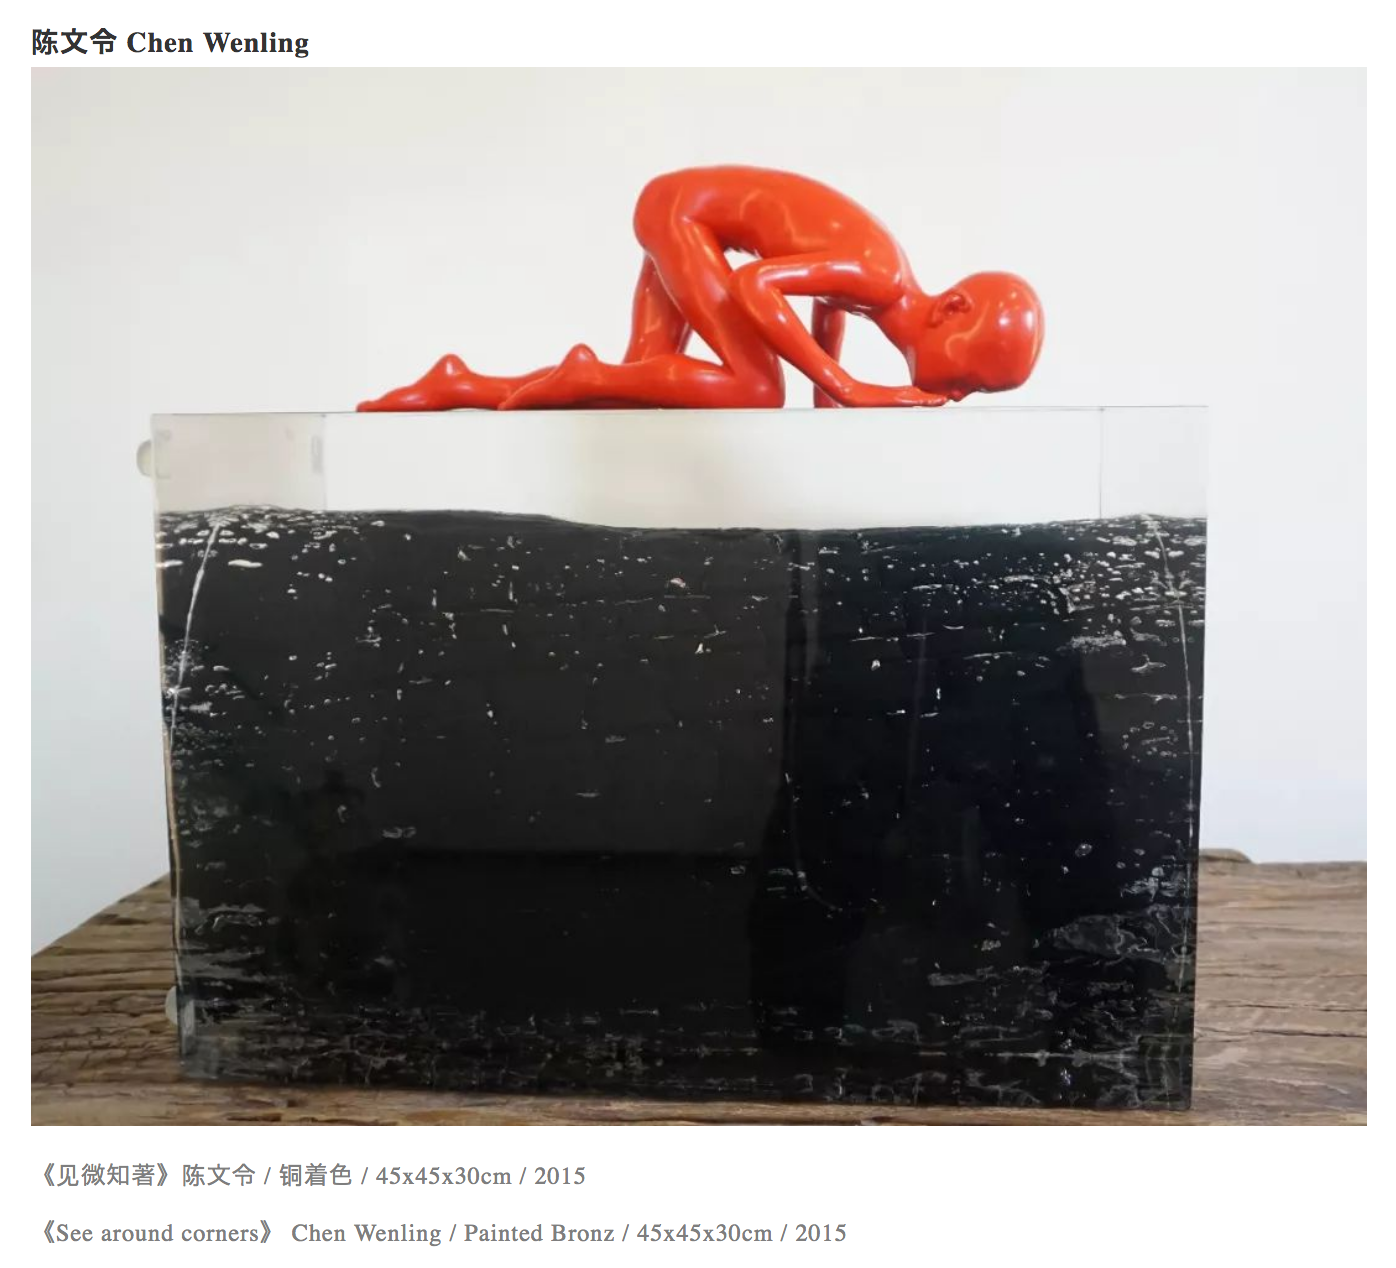 Chen Wenling and Yang Mian in Venice, Italy